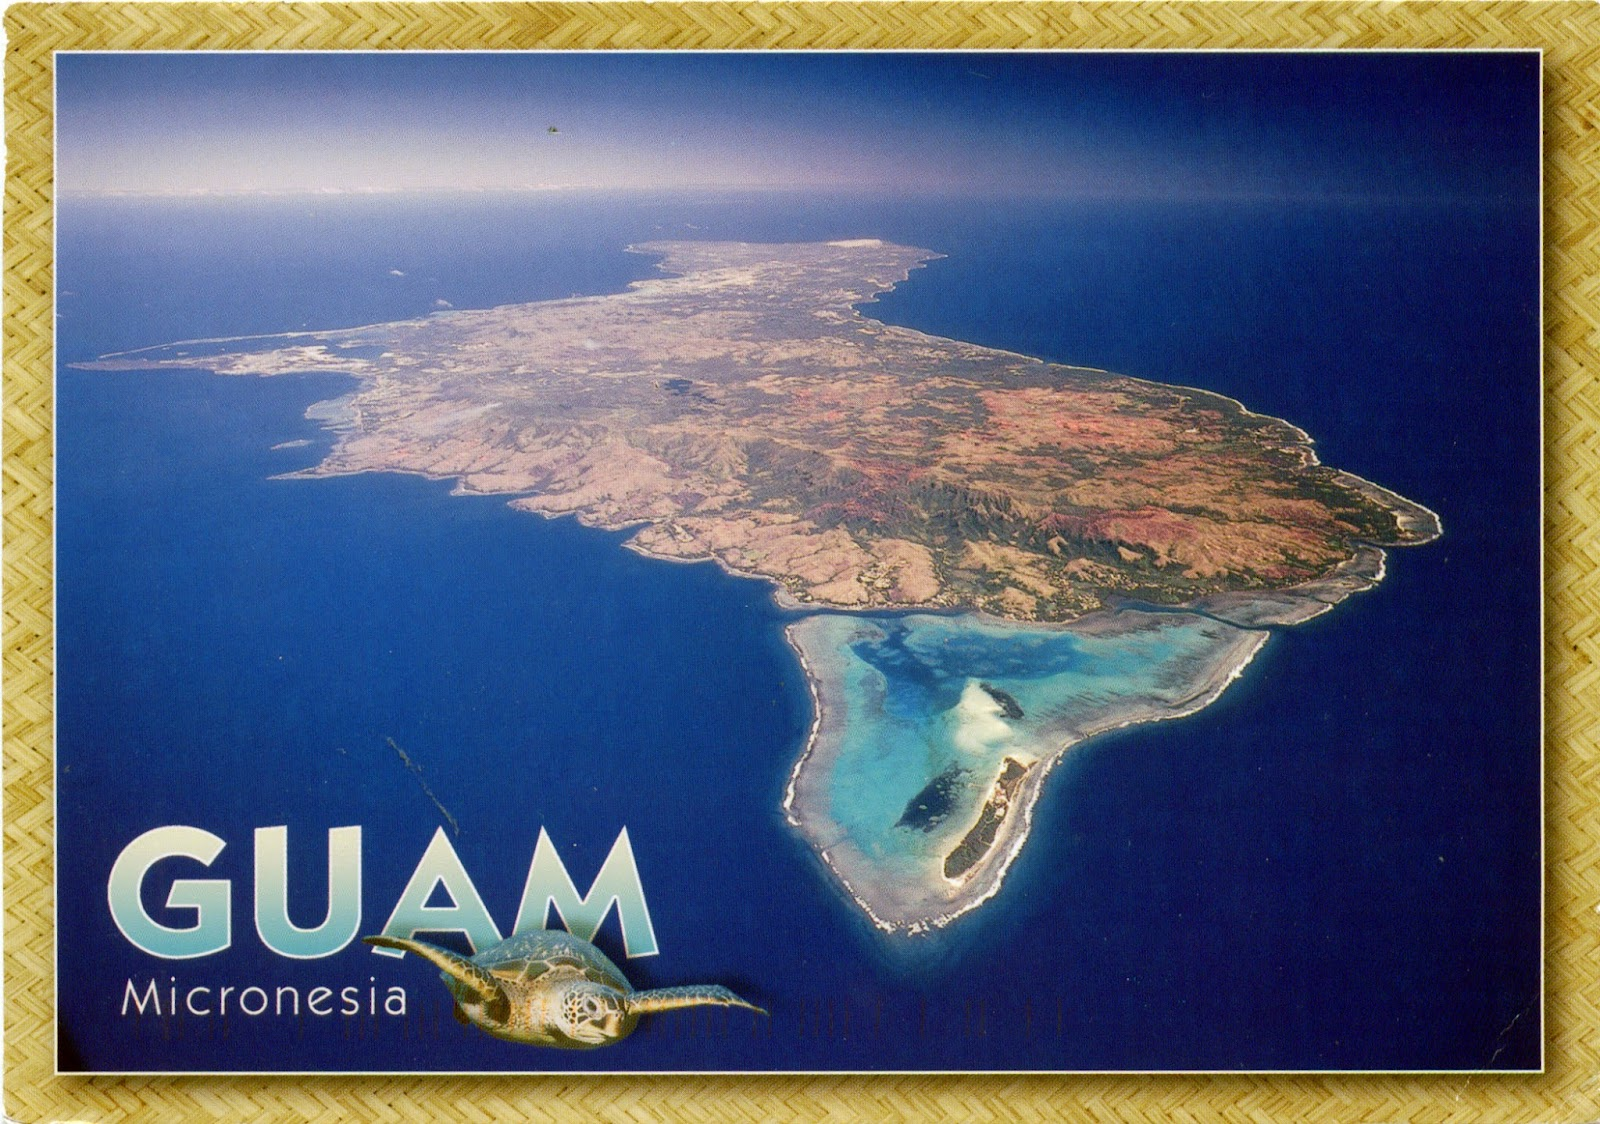 where is guam located on the map of the world #16, electrical diagram, where is guam located on the map of the world